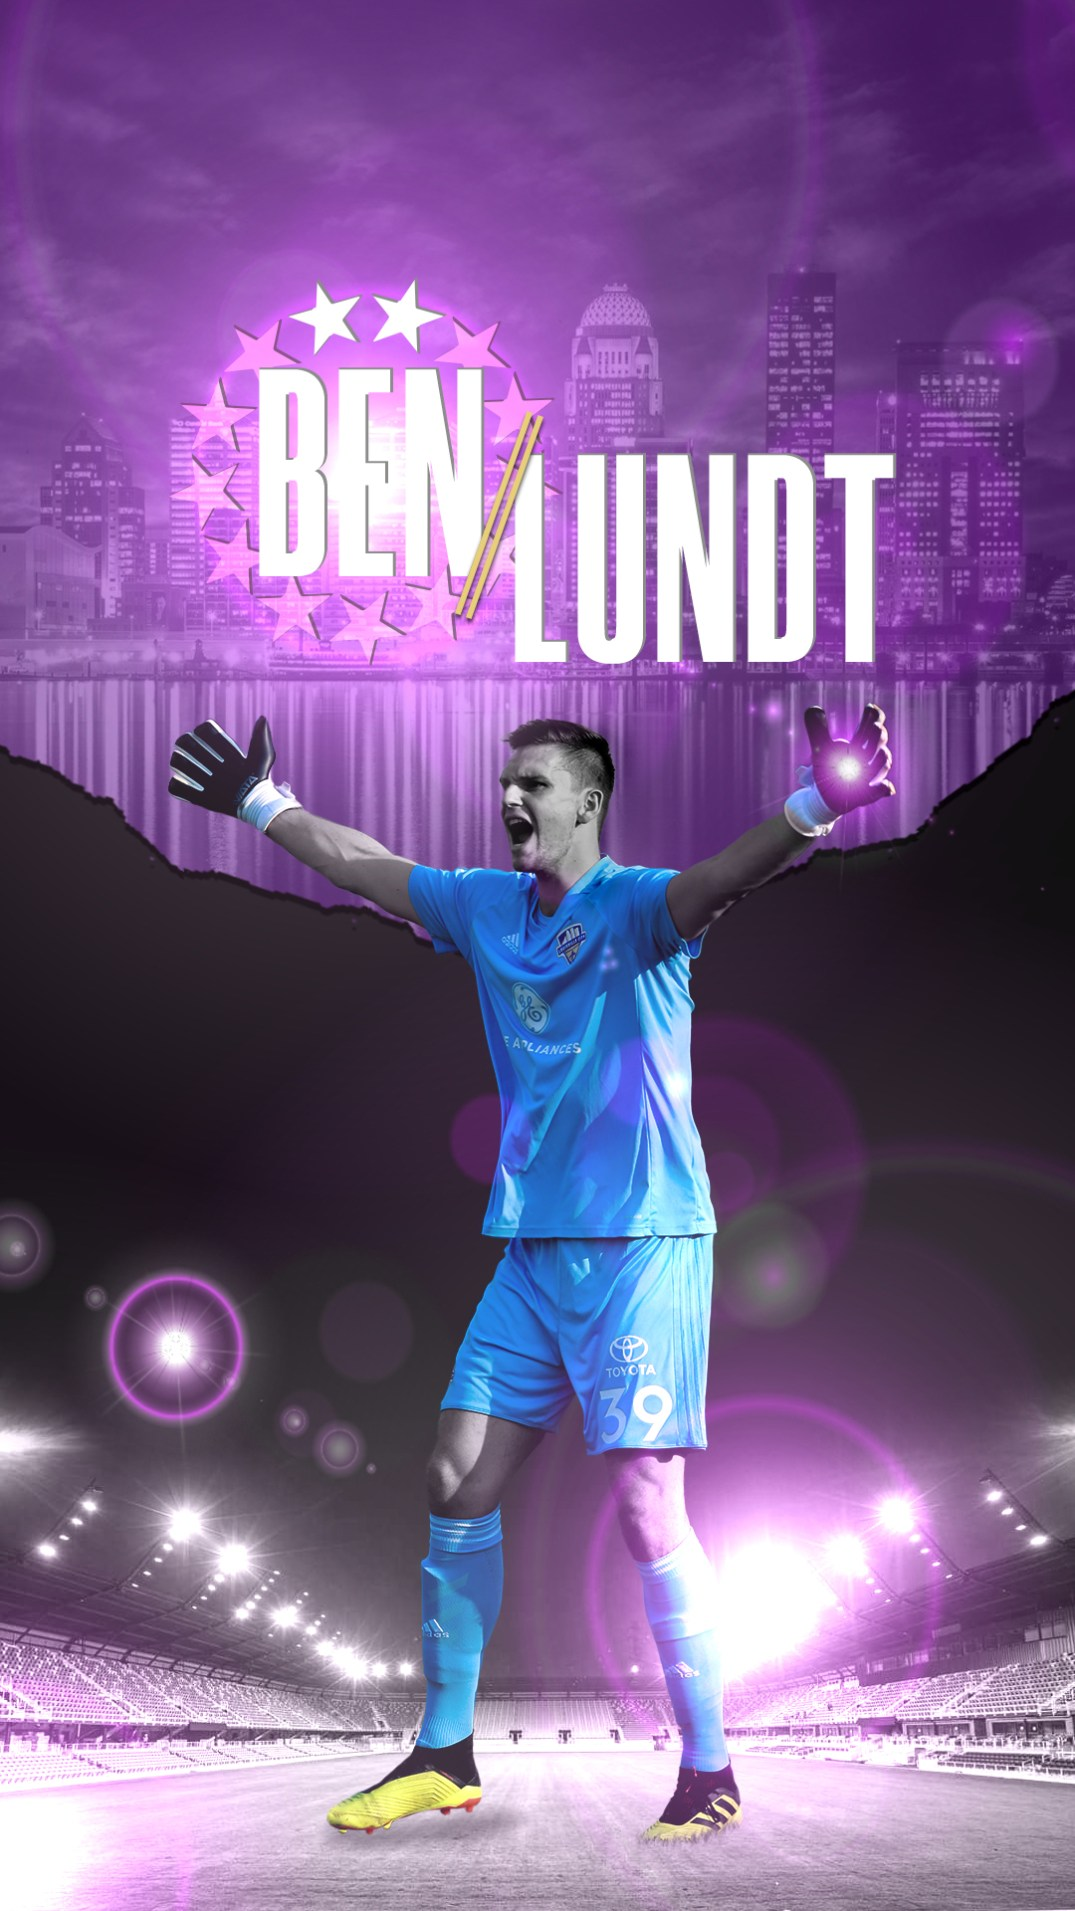 lou-ben_lundt-wallpaper